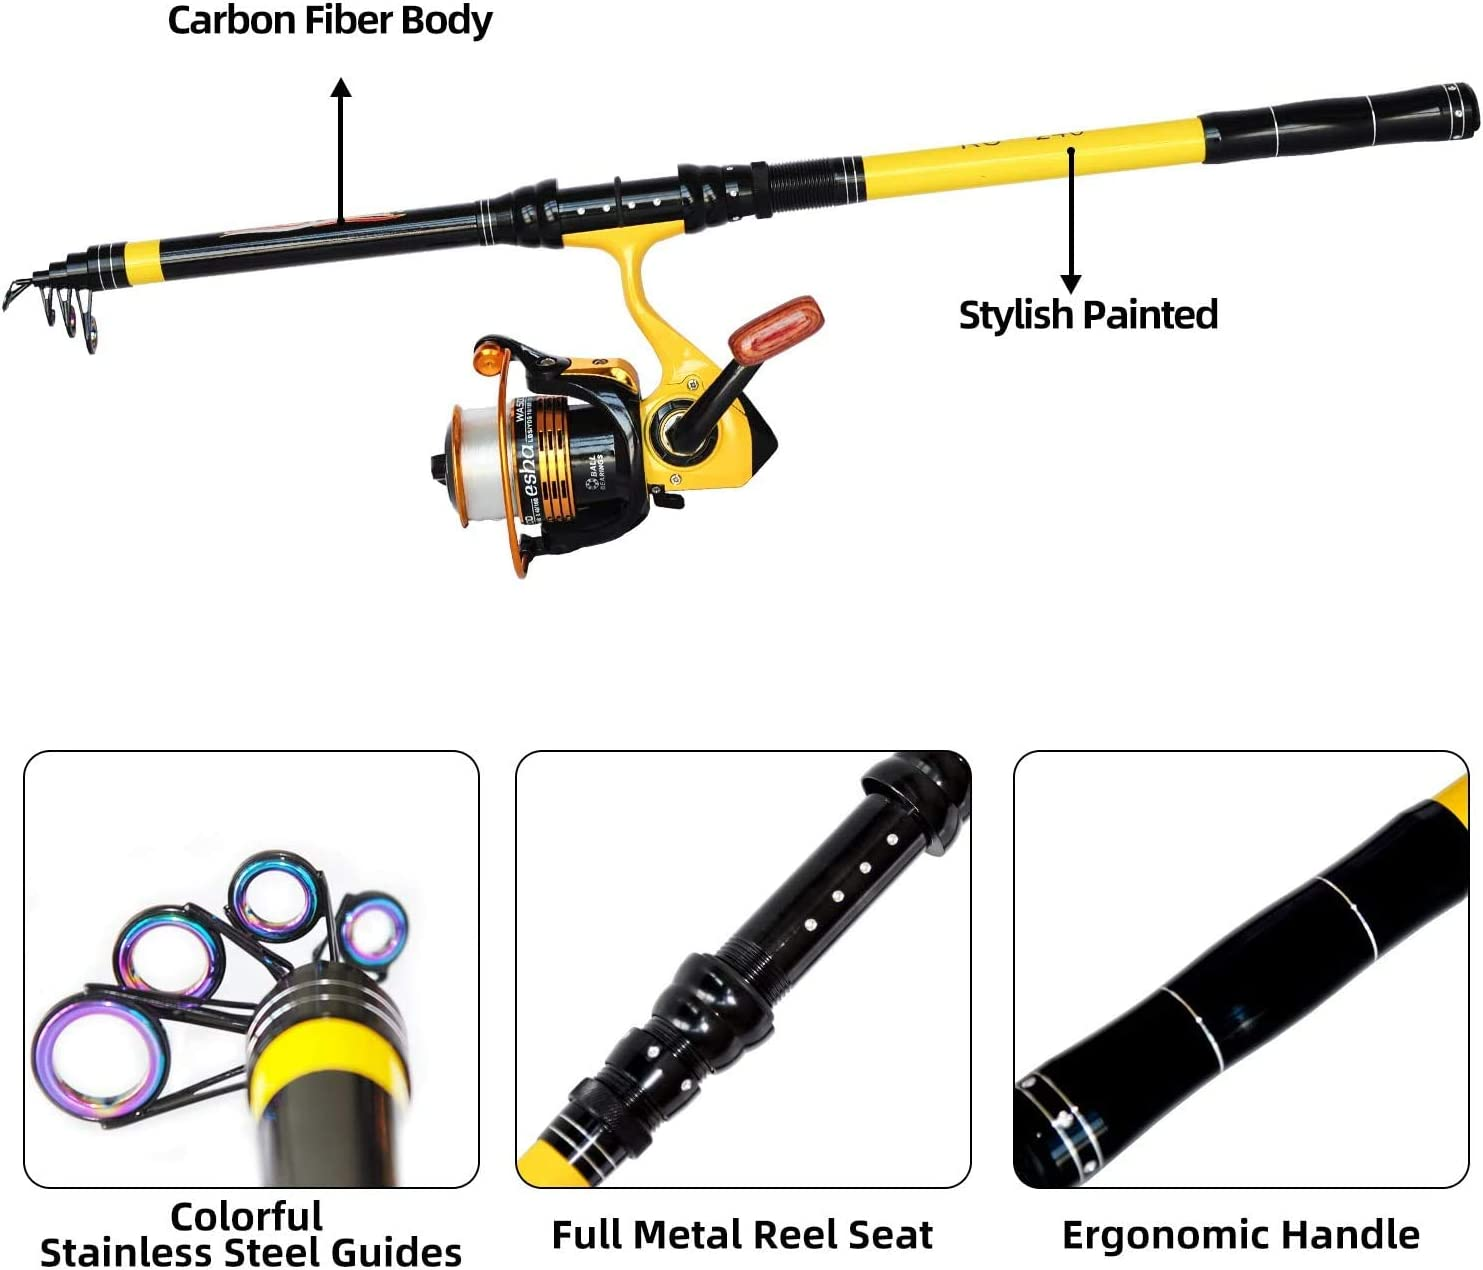 Richcat Fishing Rod and Reel Combo,Medium Heavy Poles and Reels Telescopic Rod Kits for Adults, 22lb Line Pre-spooled with Spining Reel for Saltwater Freshwater Catfish Bass Fishing